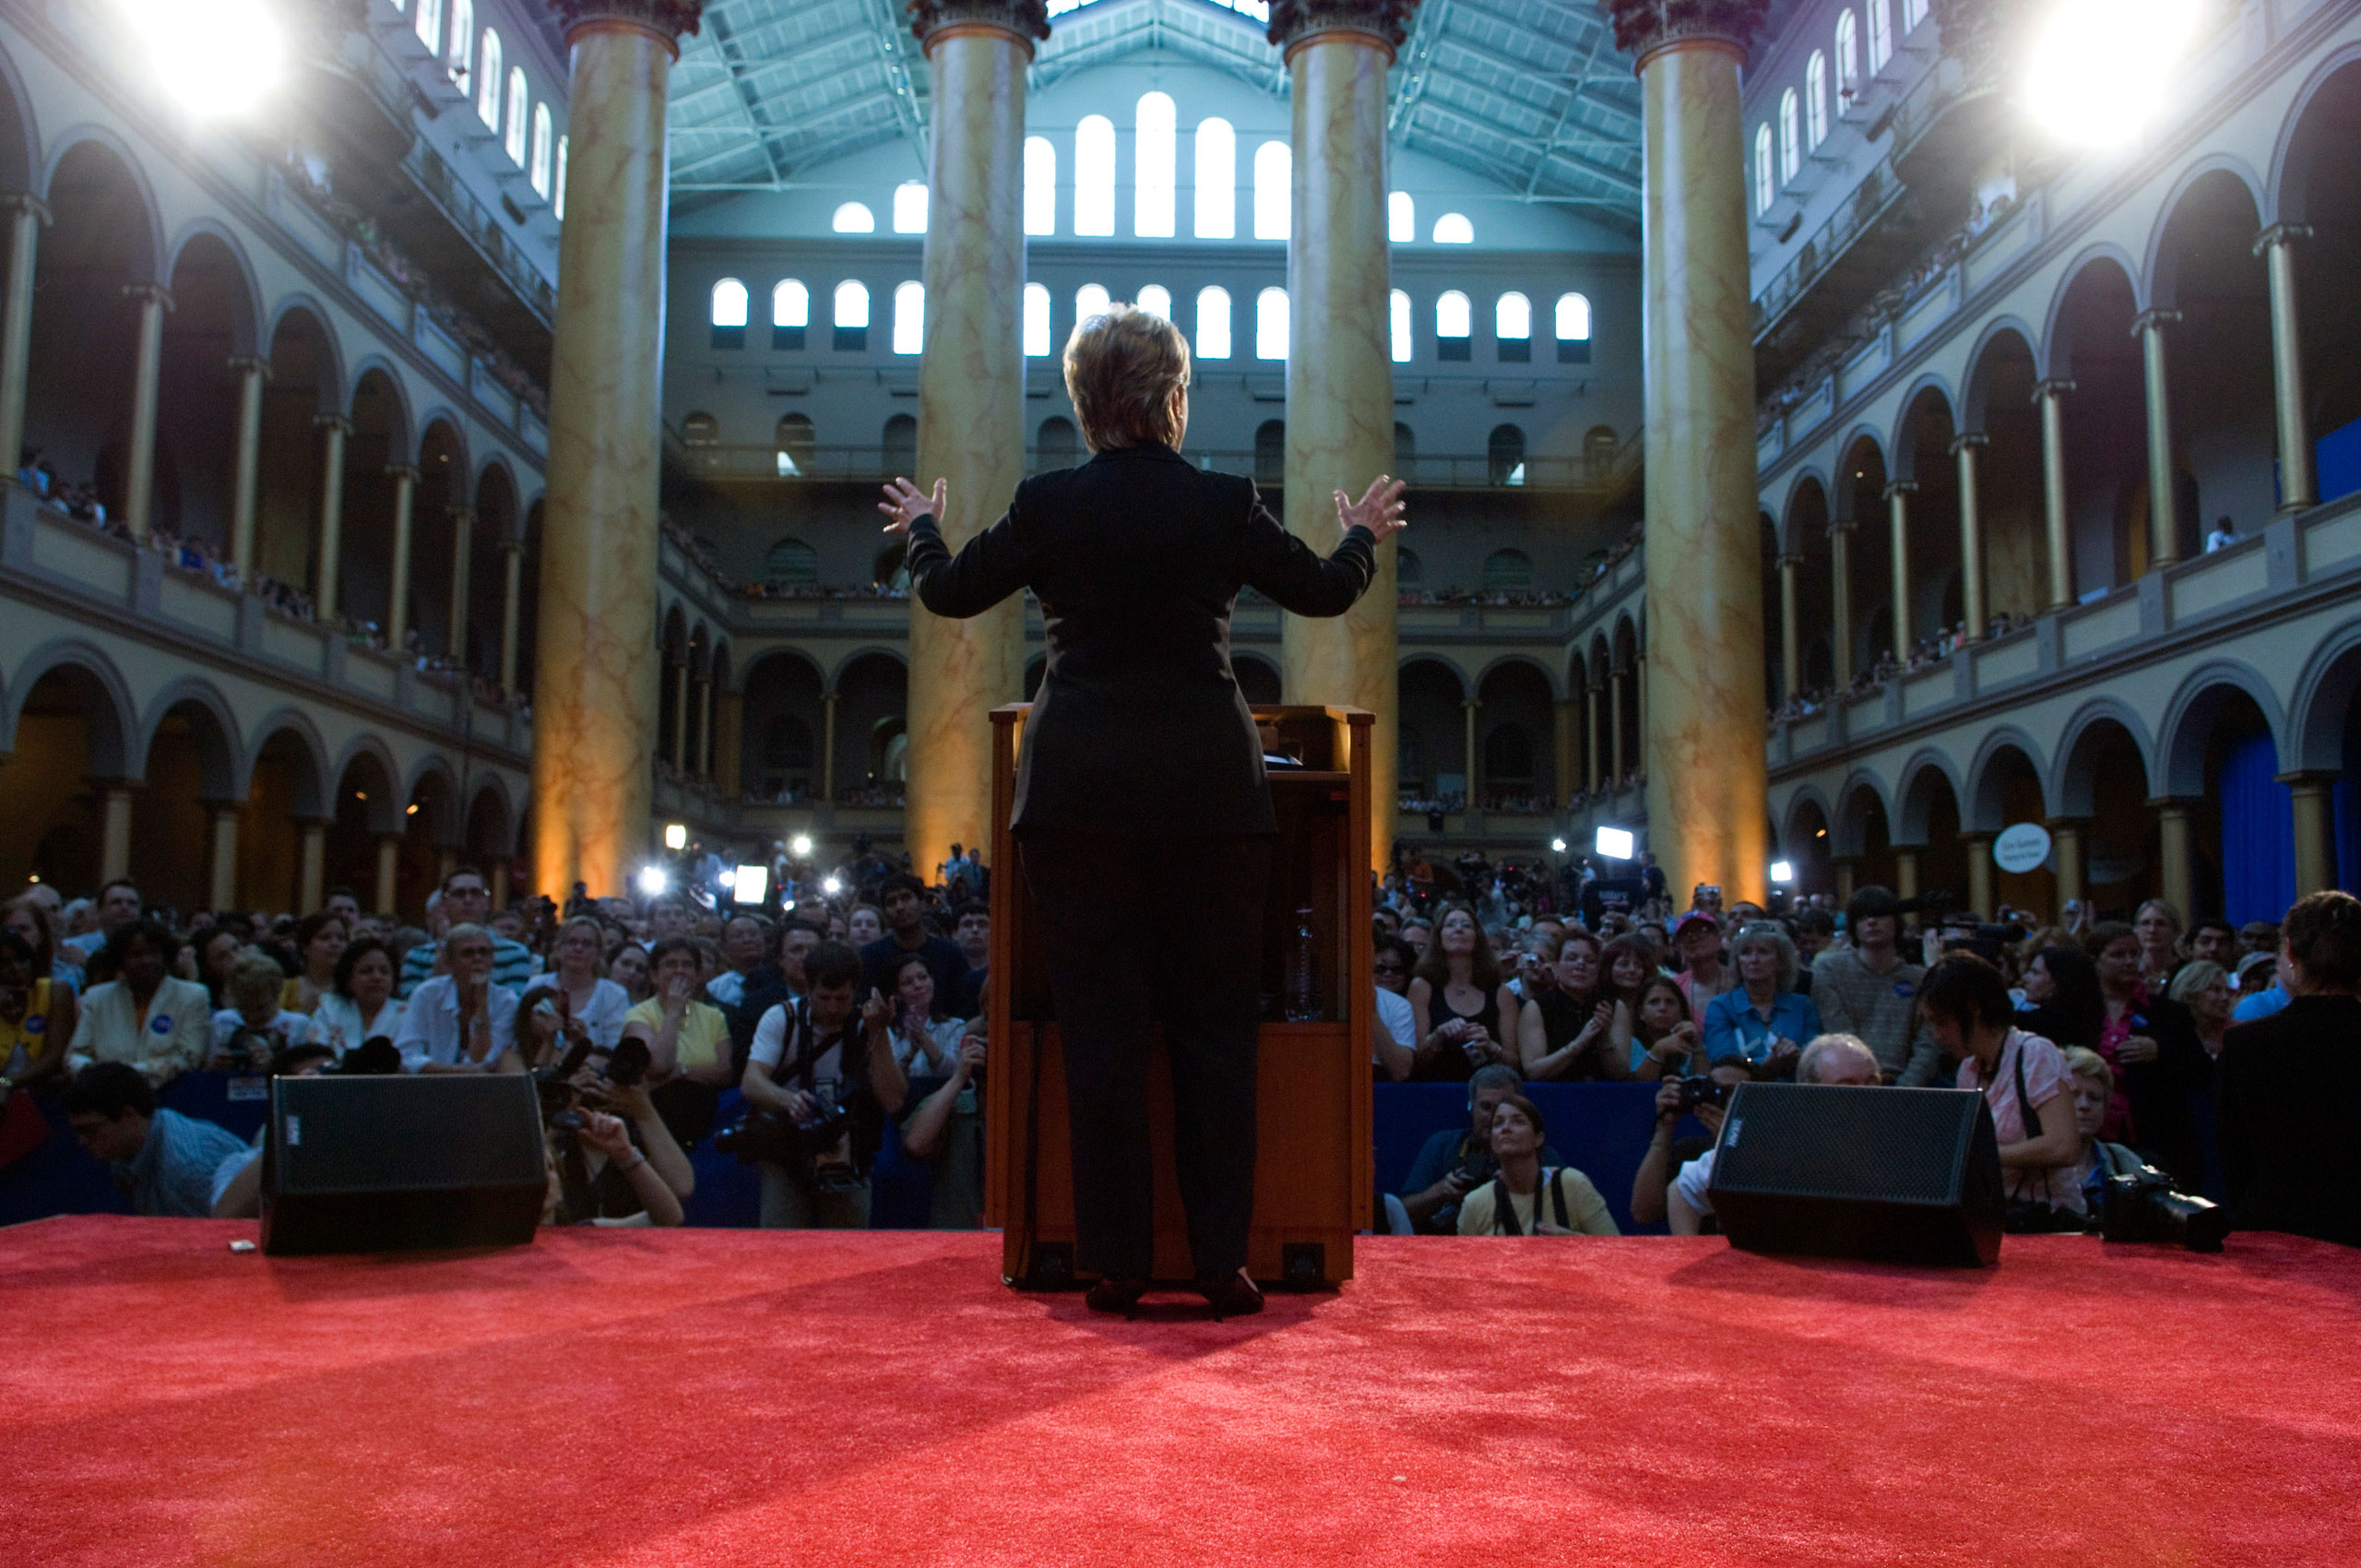 Hillary Clinton's concession speech at the National Building Museum in Washington DC. The place was packed with her supporters as she gave her  18 Million Cracks in the Ceiling  speech.